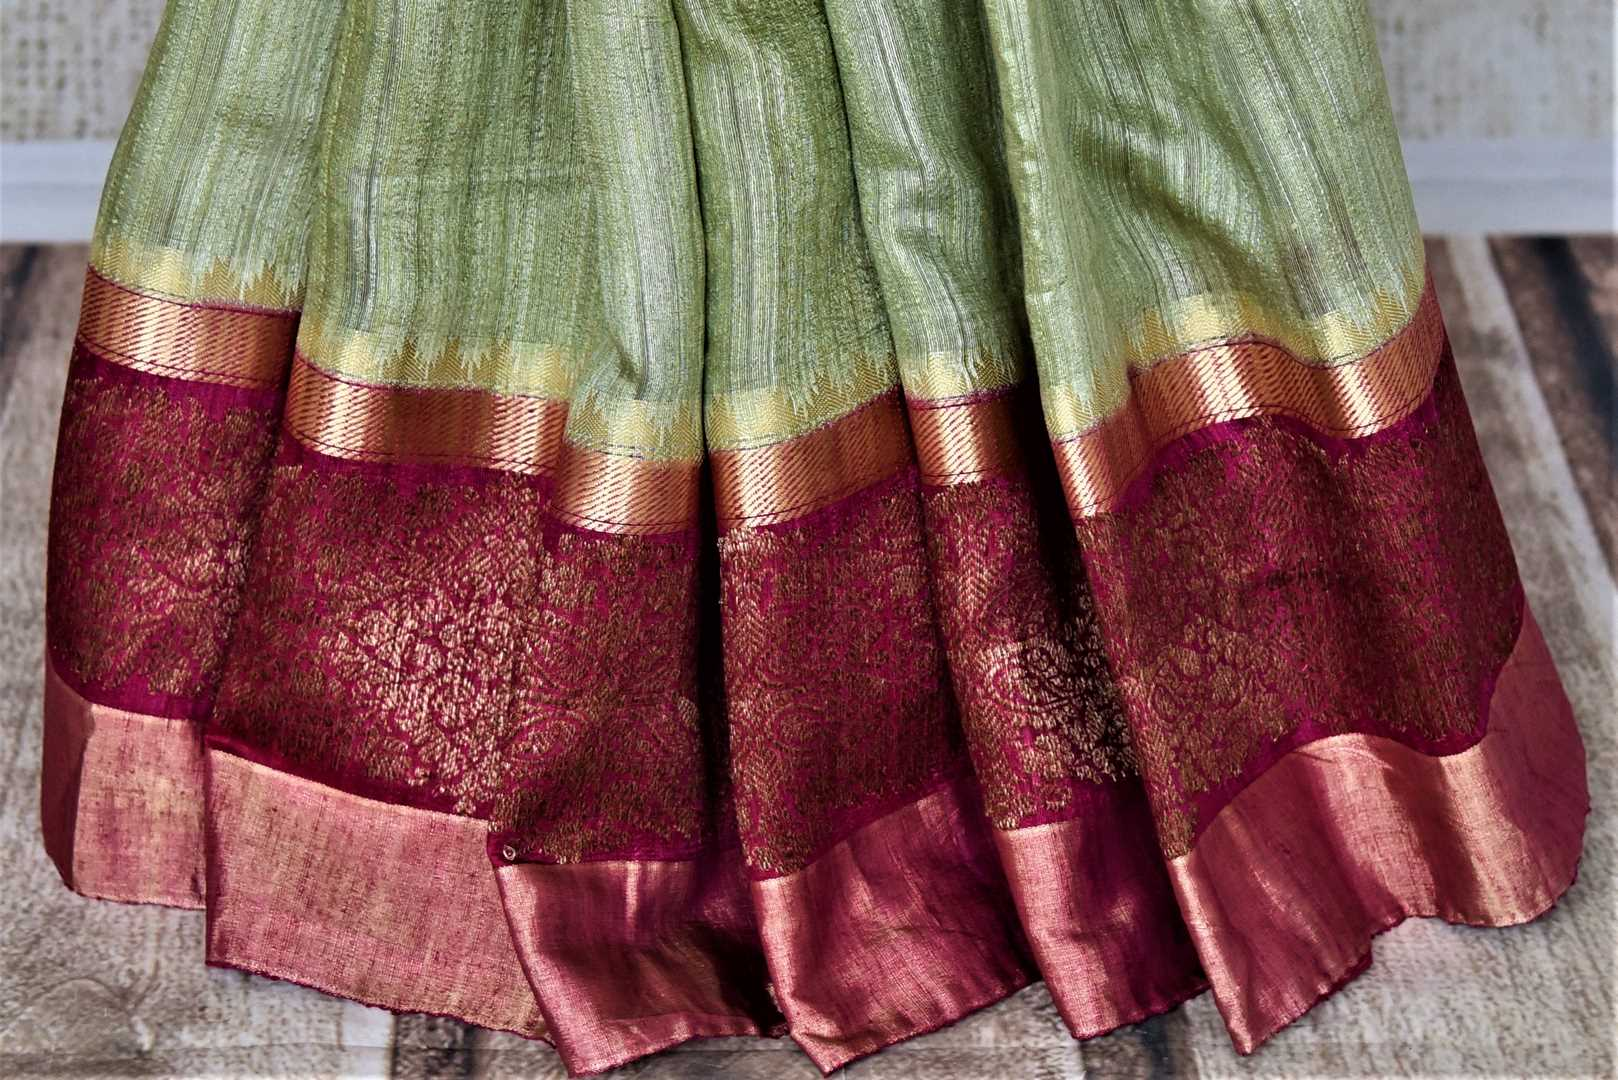 Shop beautiful mint green tussar Banarsi saree online in USA with pink antique zari border. Choose tasteful handloom sarees for special occasions from Pure Elegance. Our exclusive Indian fashion store has a myriad of exquisite pure silk saris, tussar sarees, Banarasi sarees for Indian women in USA.-pleats